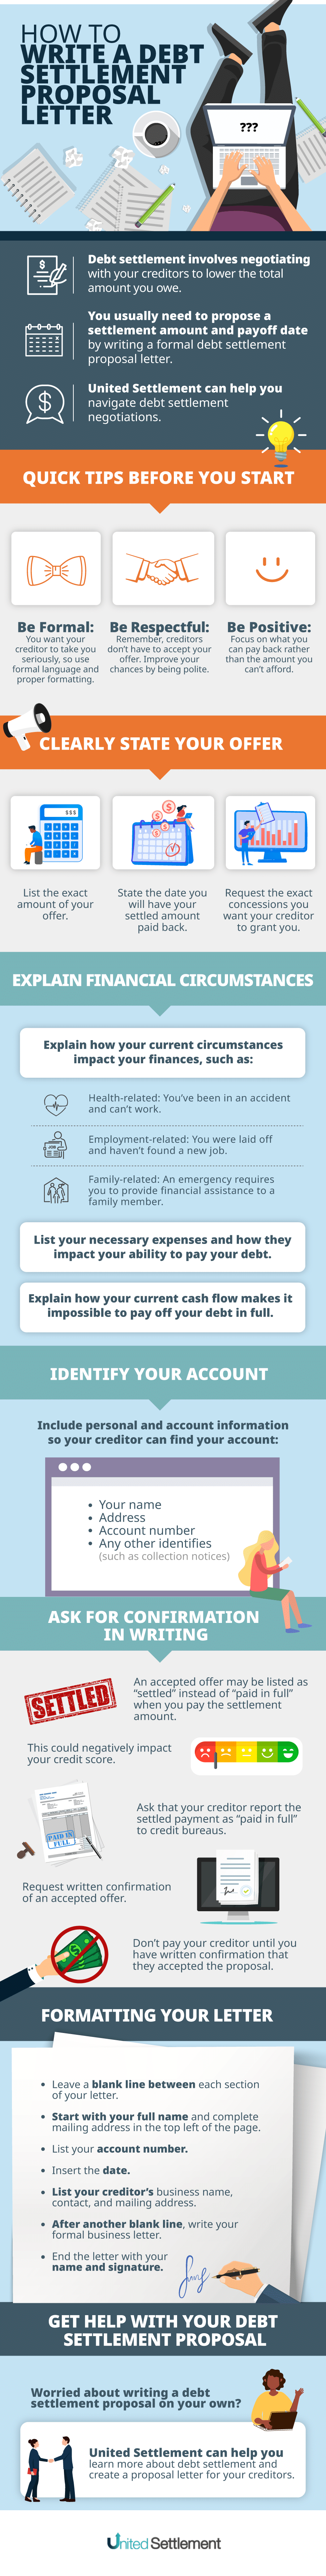 How To Write a Debt Settlement Proposal Letter Infograhic